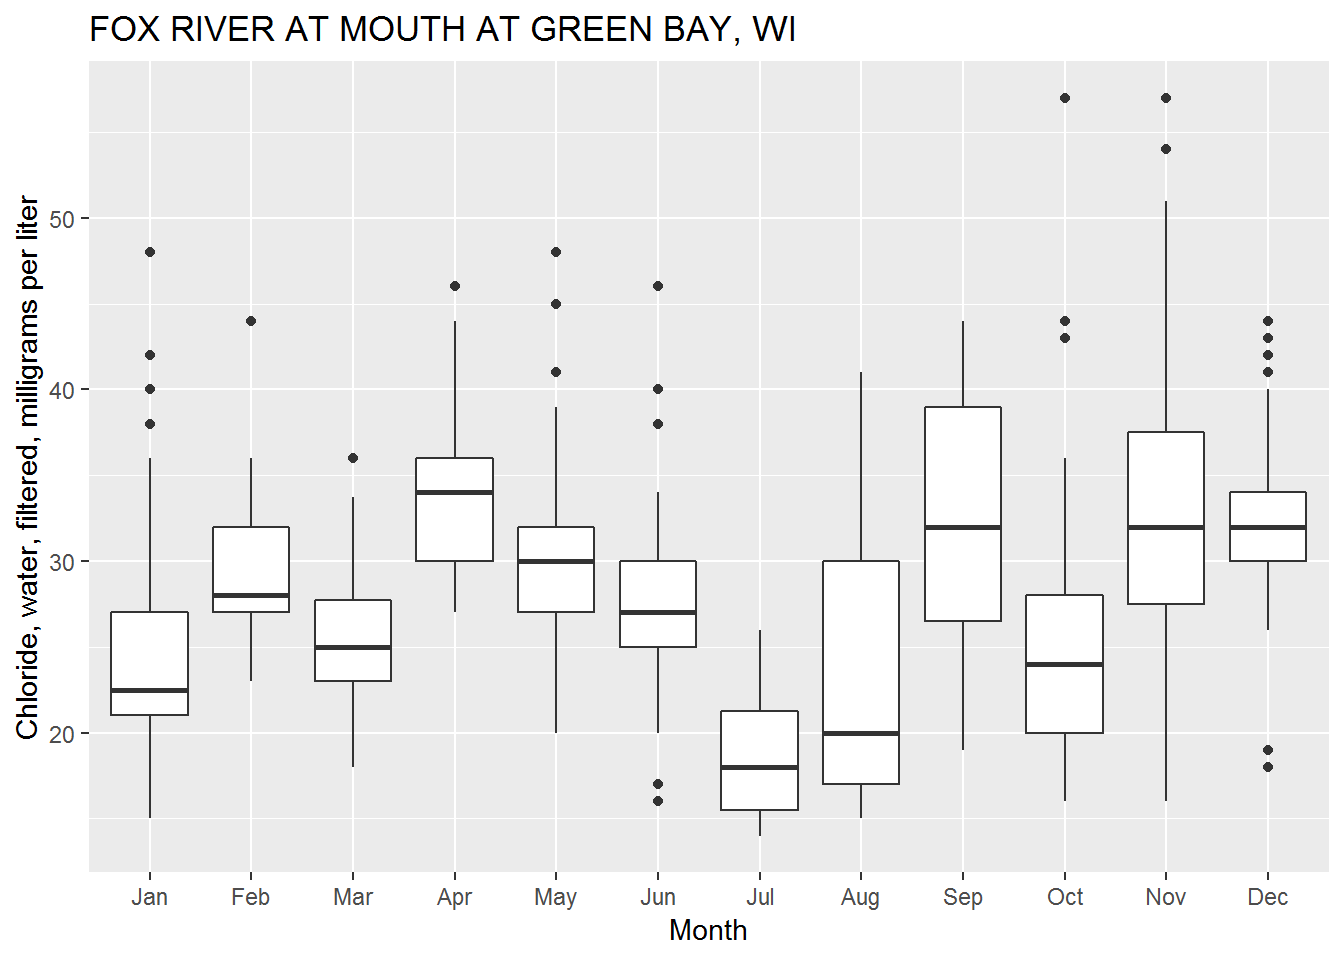 ggplot2 defaults for boxplots.